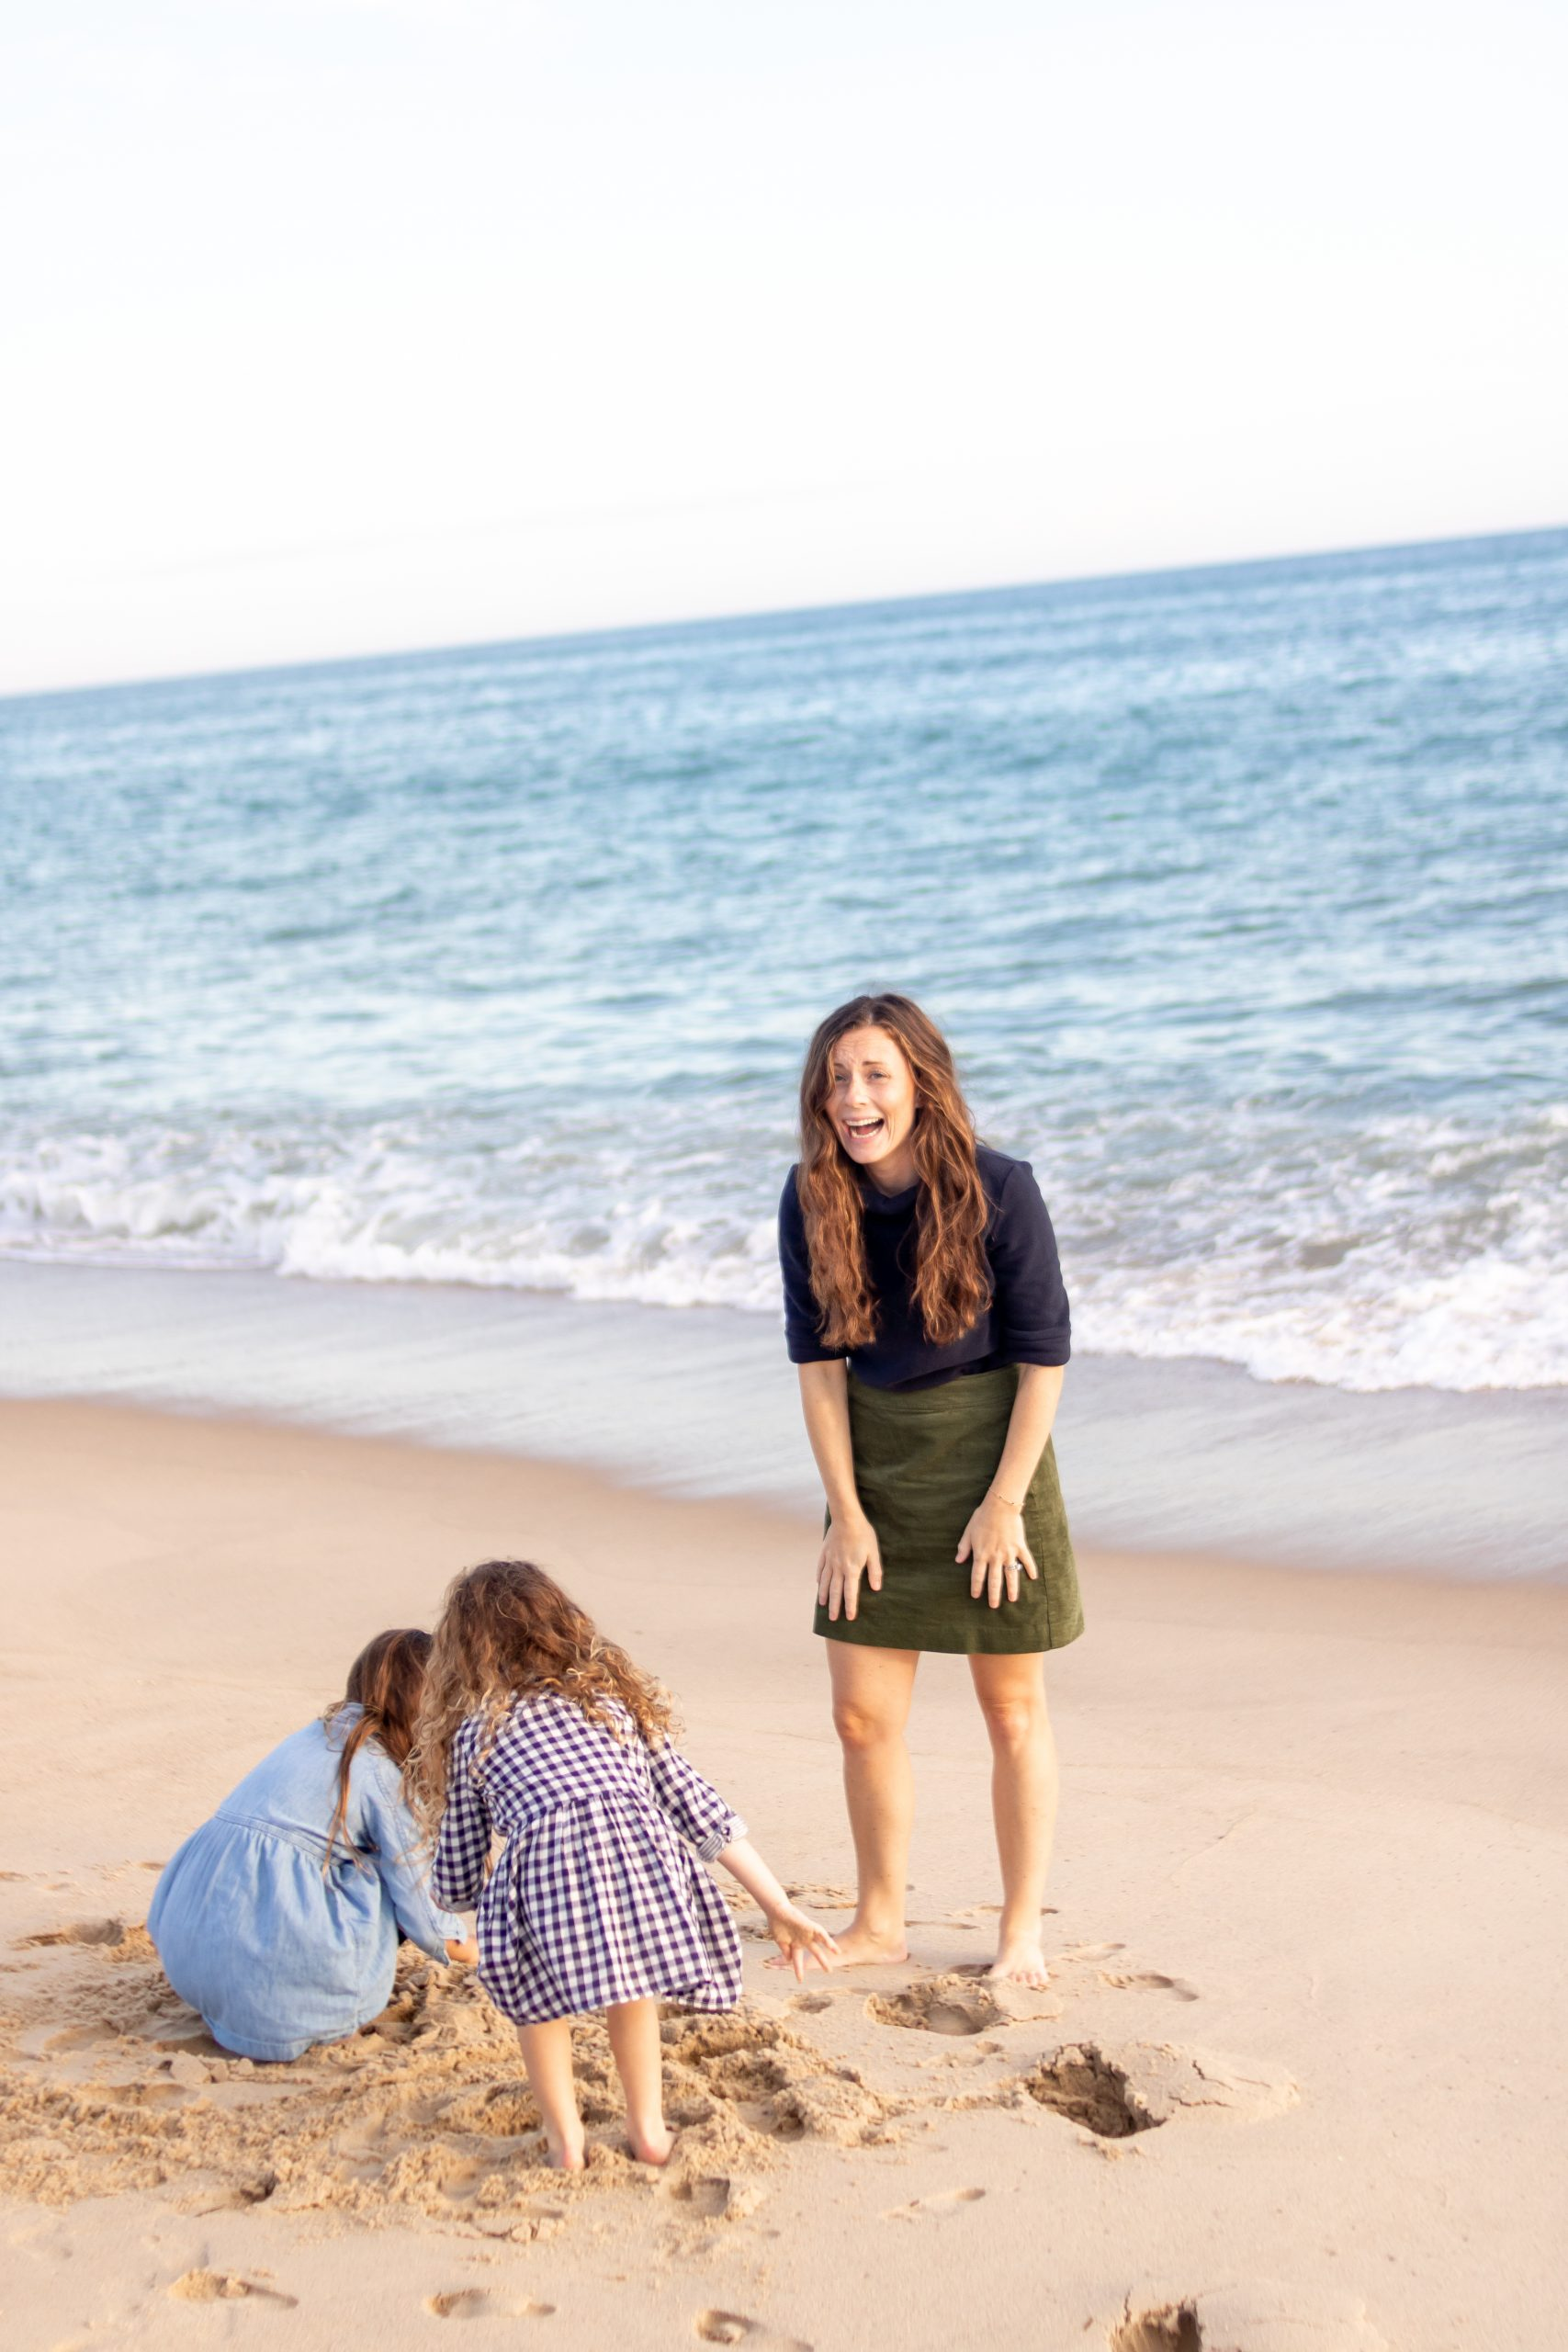 Classic Fall Beach Outfit Dudley Stephens Fleece and Corduroy Skirt with Girls' Plaid and Chambray Dresses